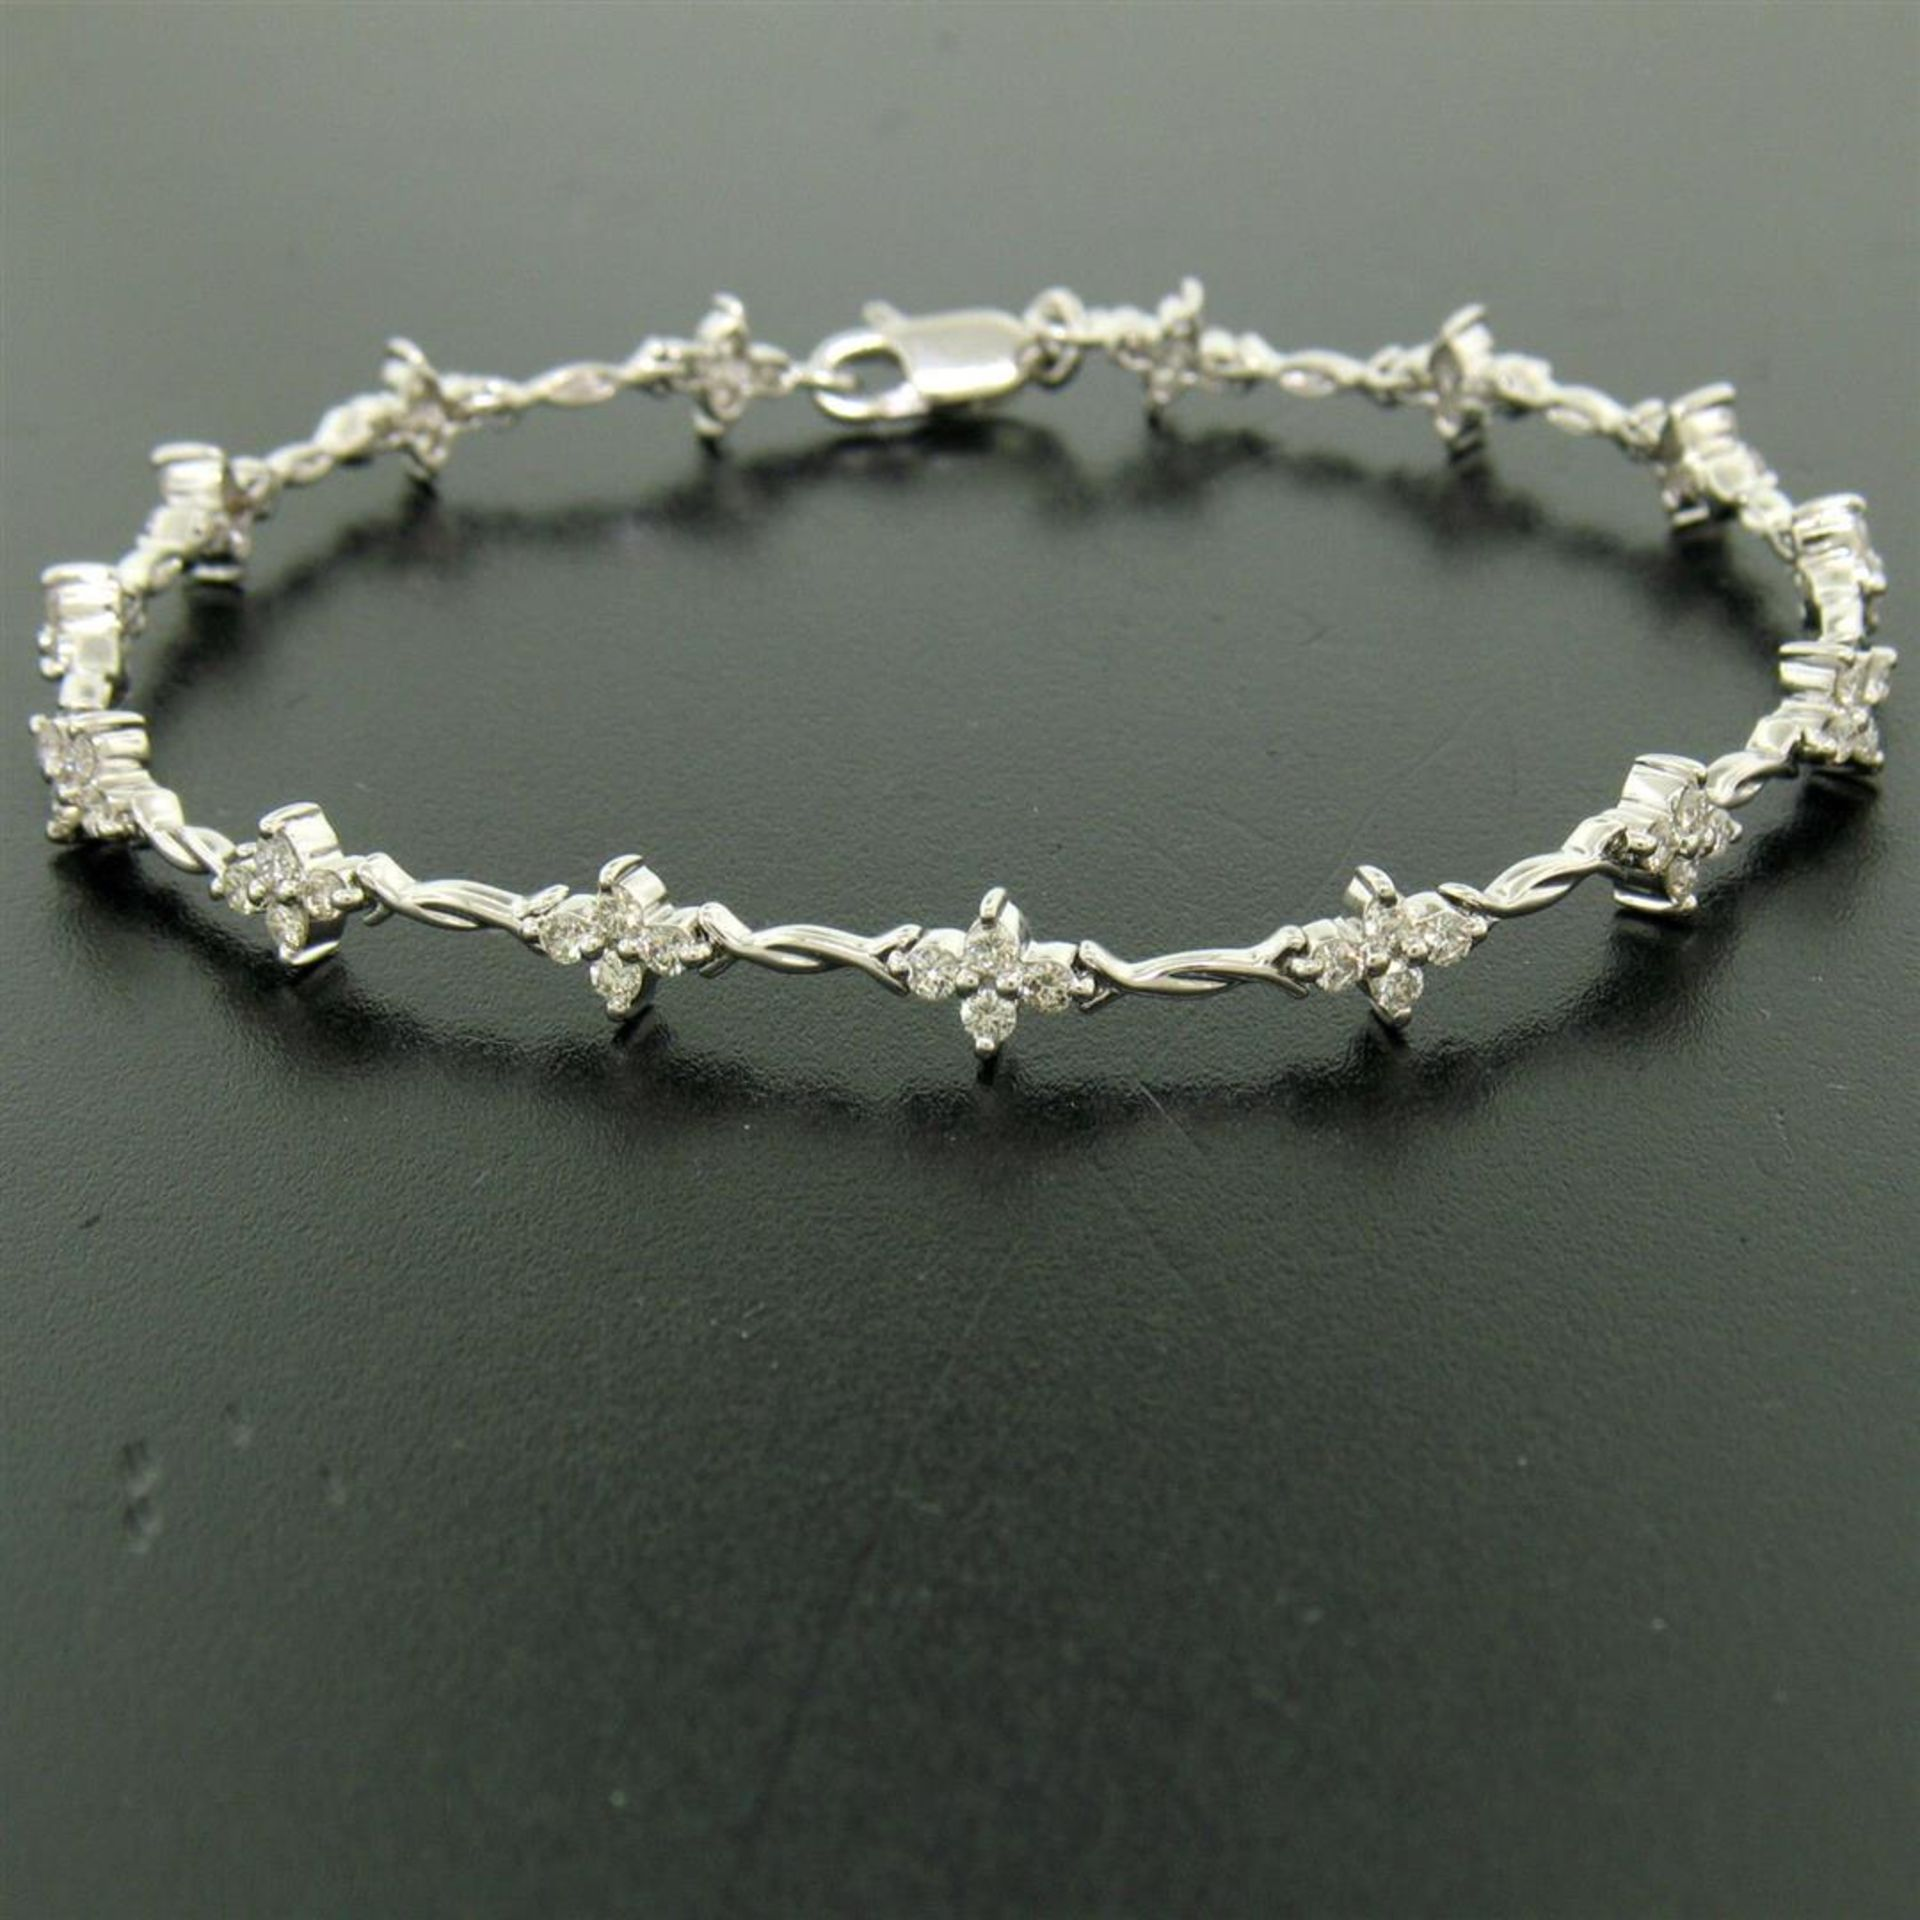 18K White Gold 1.65ctw Diamond Flower Cluster Twisted Wire Link Tennis Bracelet - Image 5 of 6